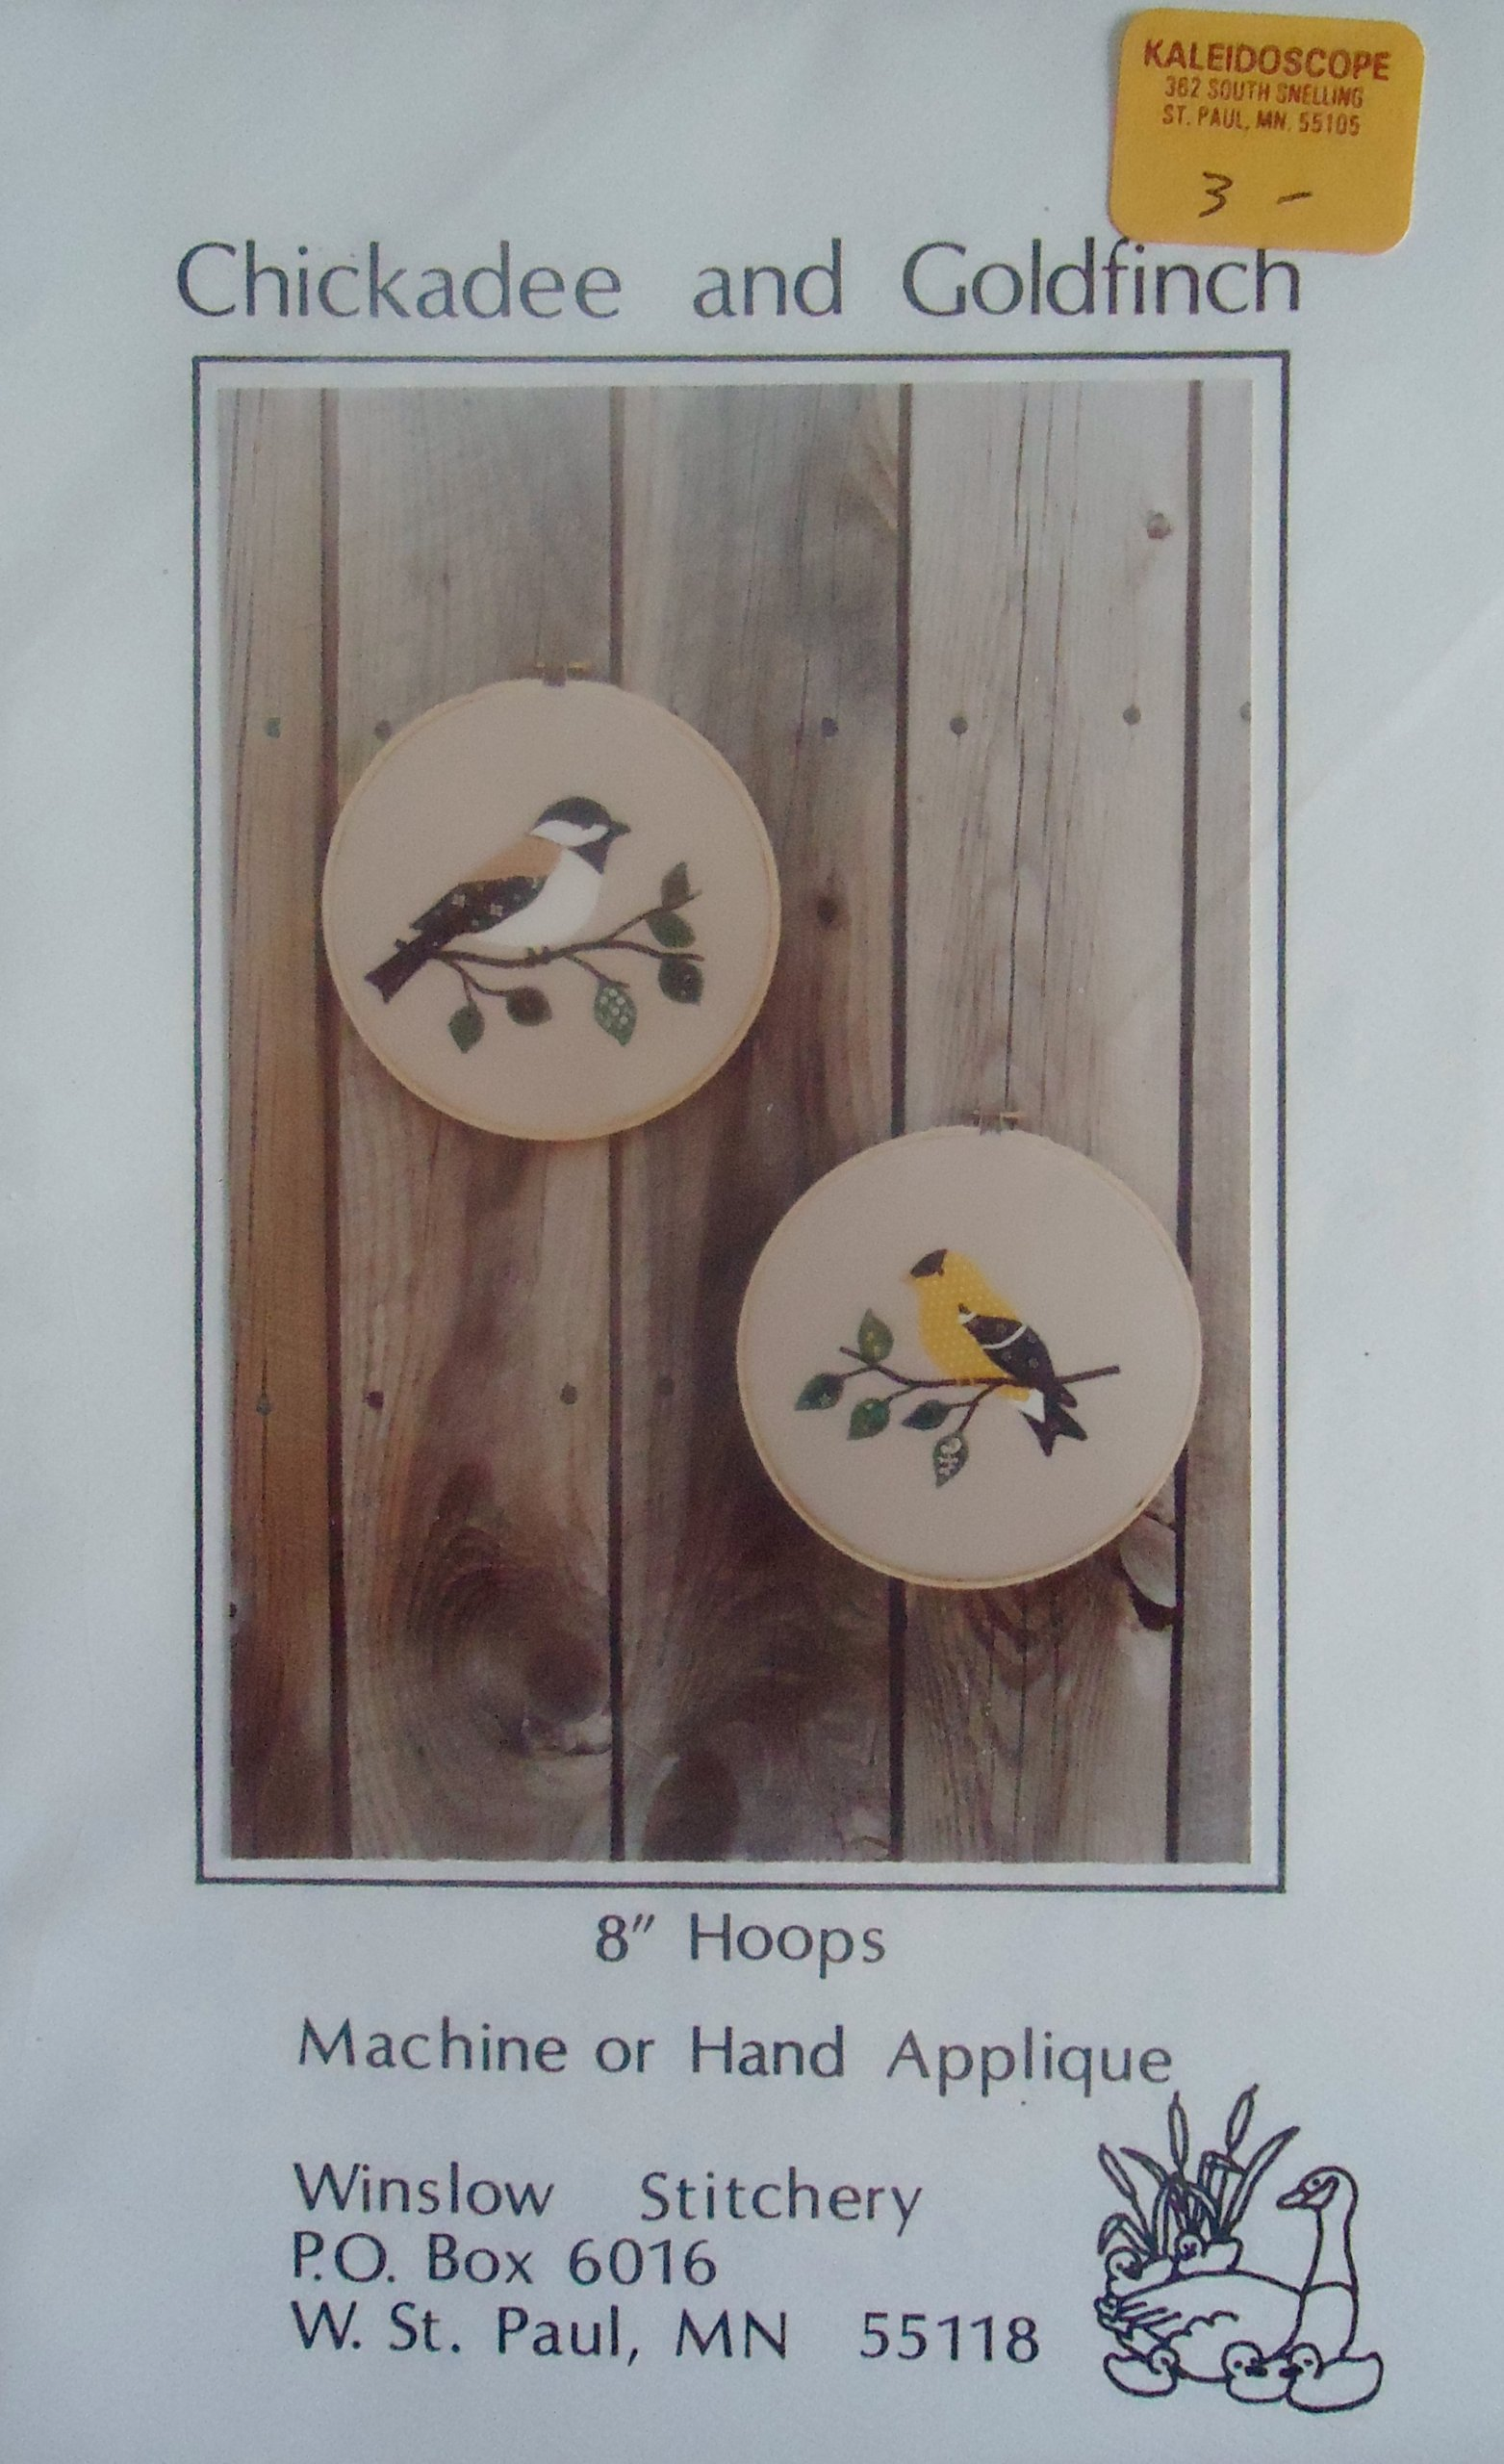 Chickadee and Goldfinch Machine or Hand Applique 8